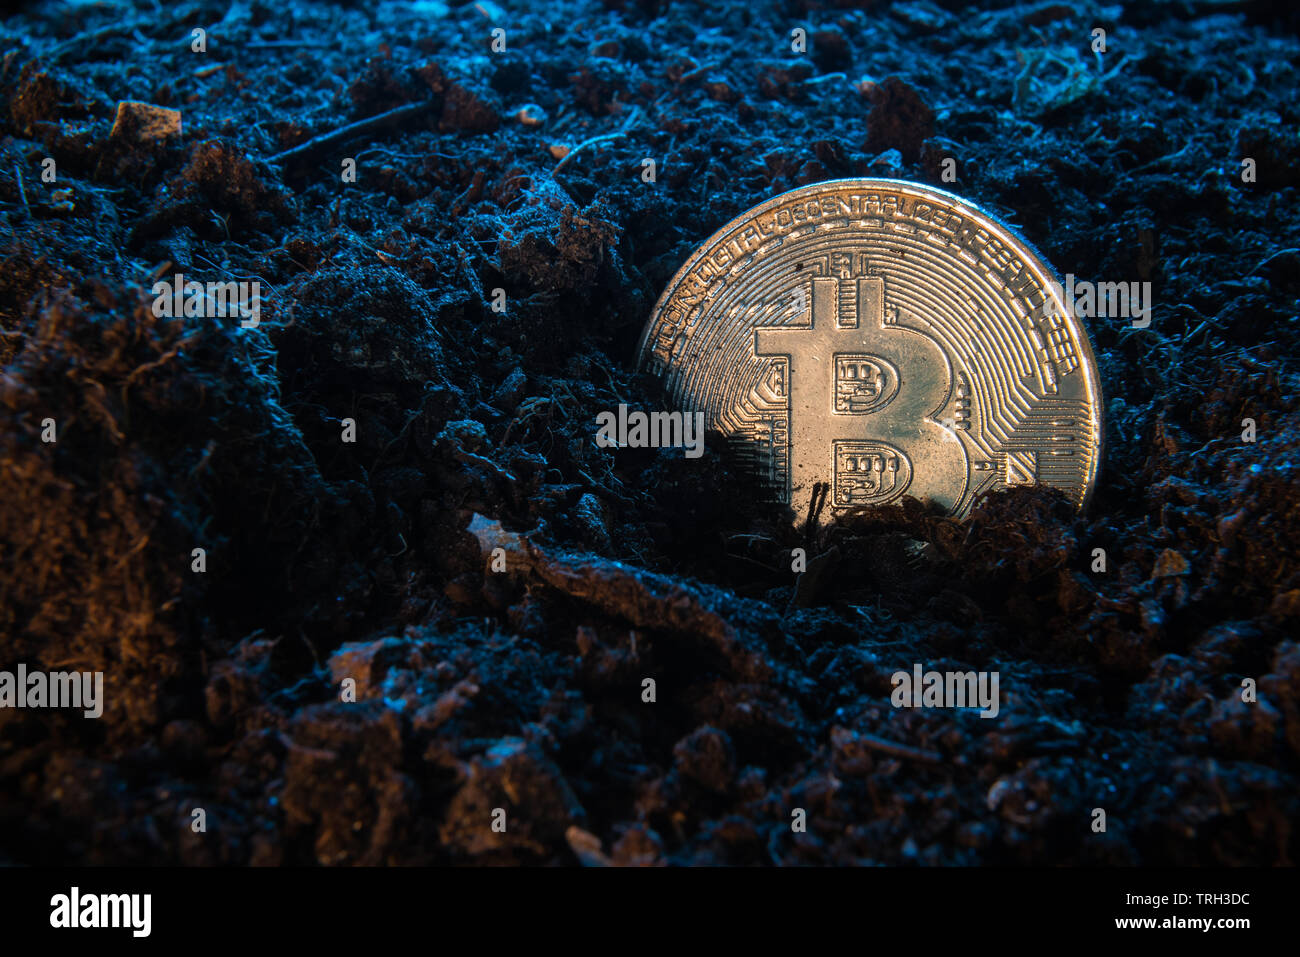 Mining crypto currency - Bitcoin. Online money coin in the dirt ground. Digital currency, block chain market, online business - Stock Image